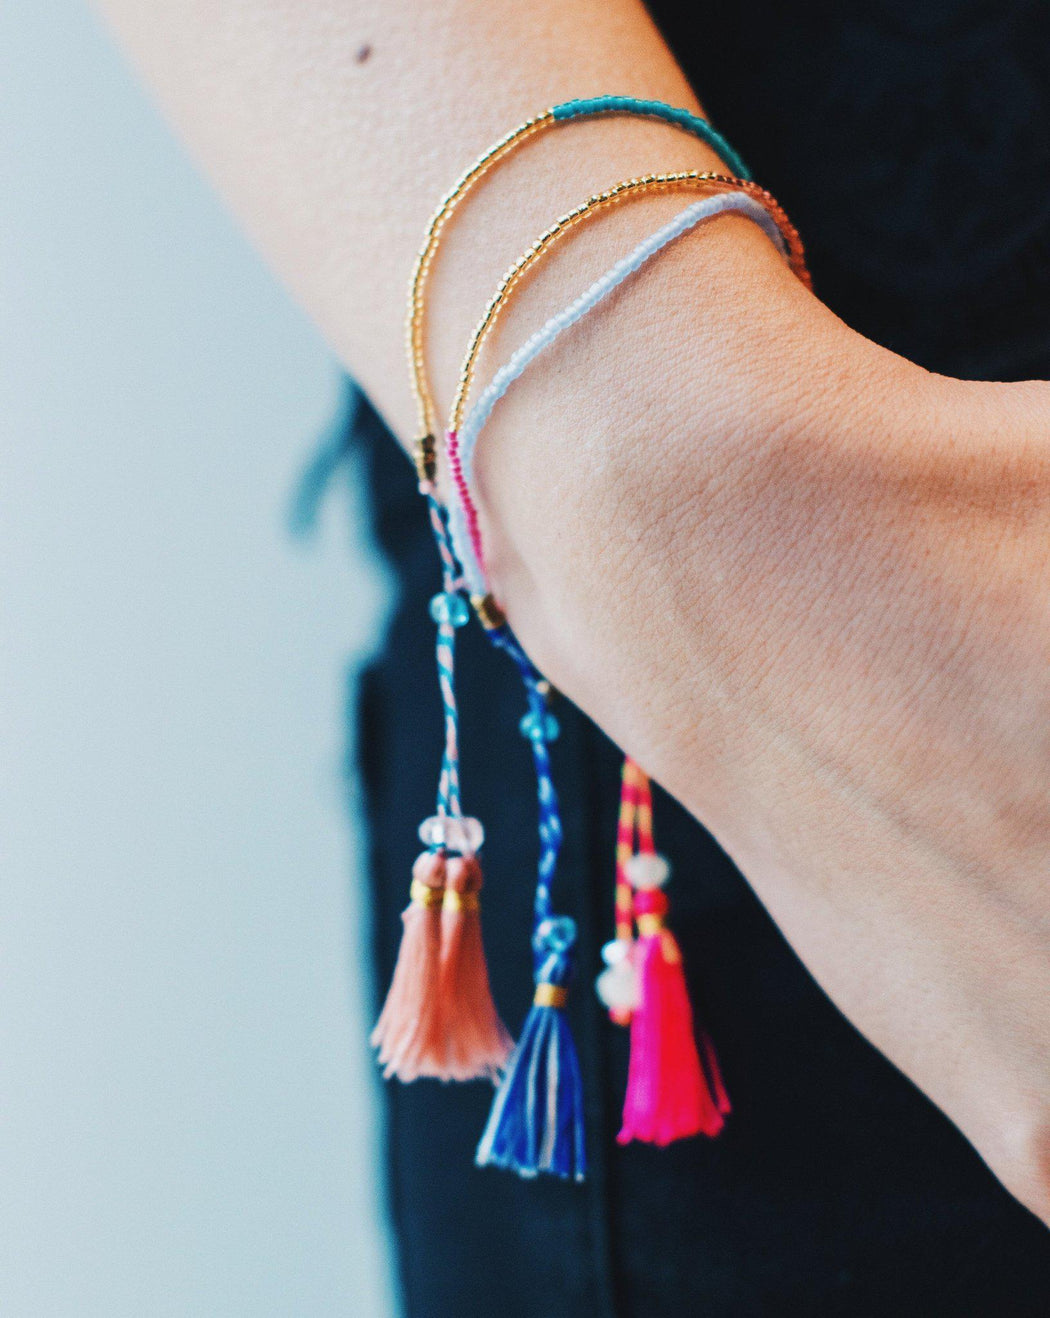 Carnivale beaded tassel bracelets hanging on wrist